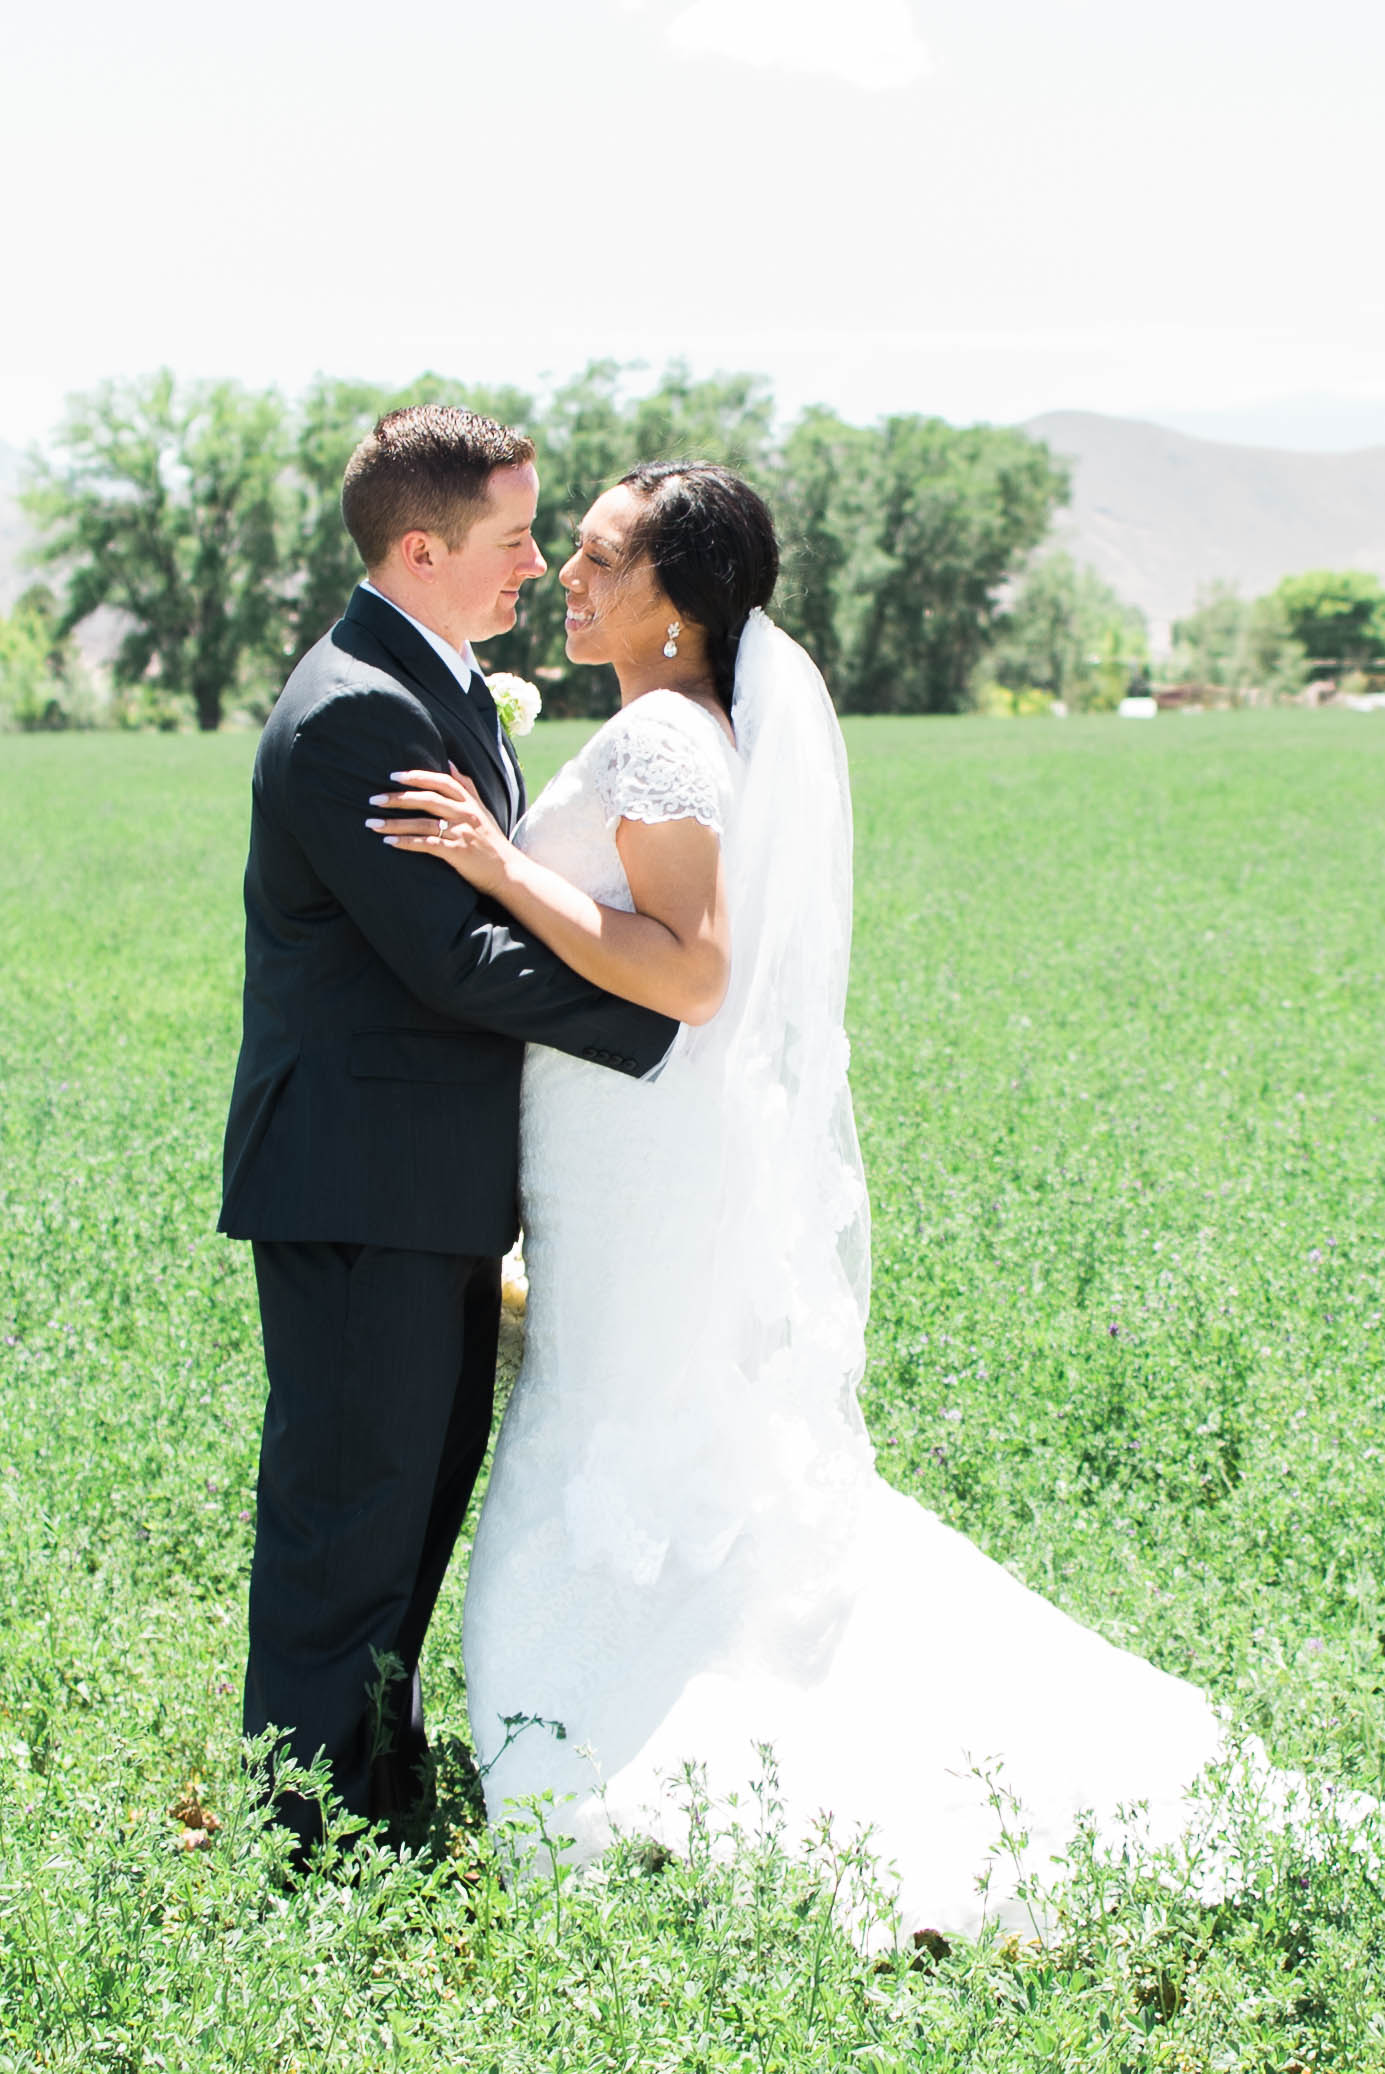 M+J-WEDDING-DAY-Sadie_Banks_Photography-427.jpg